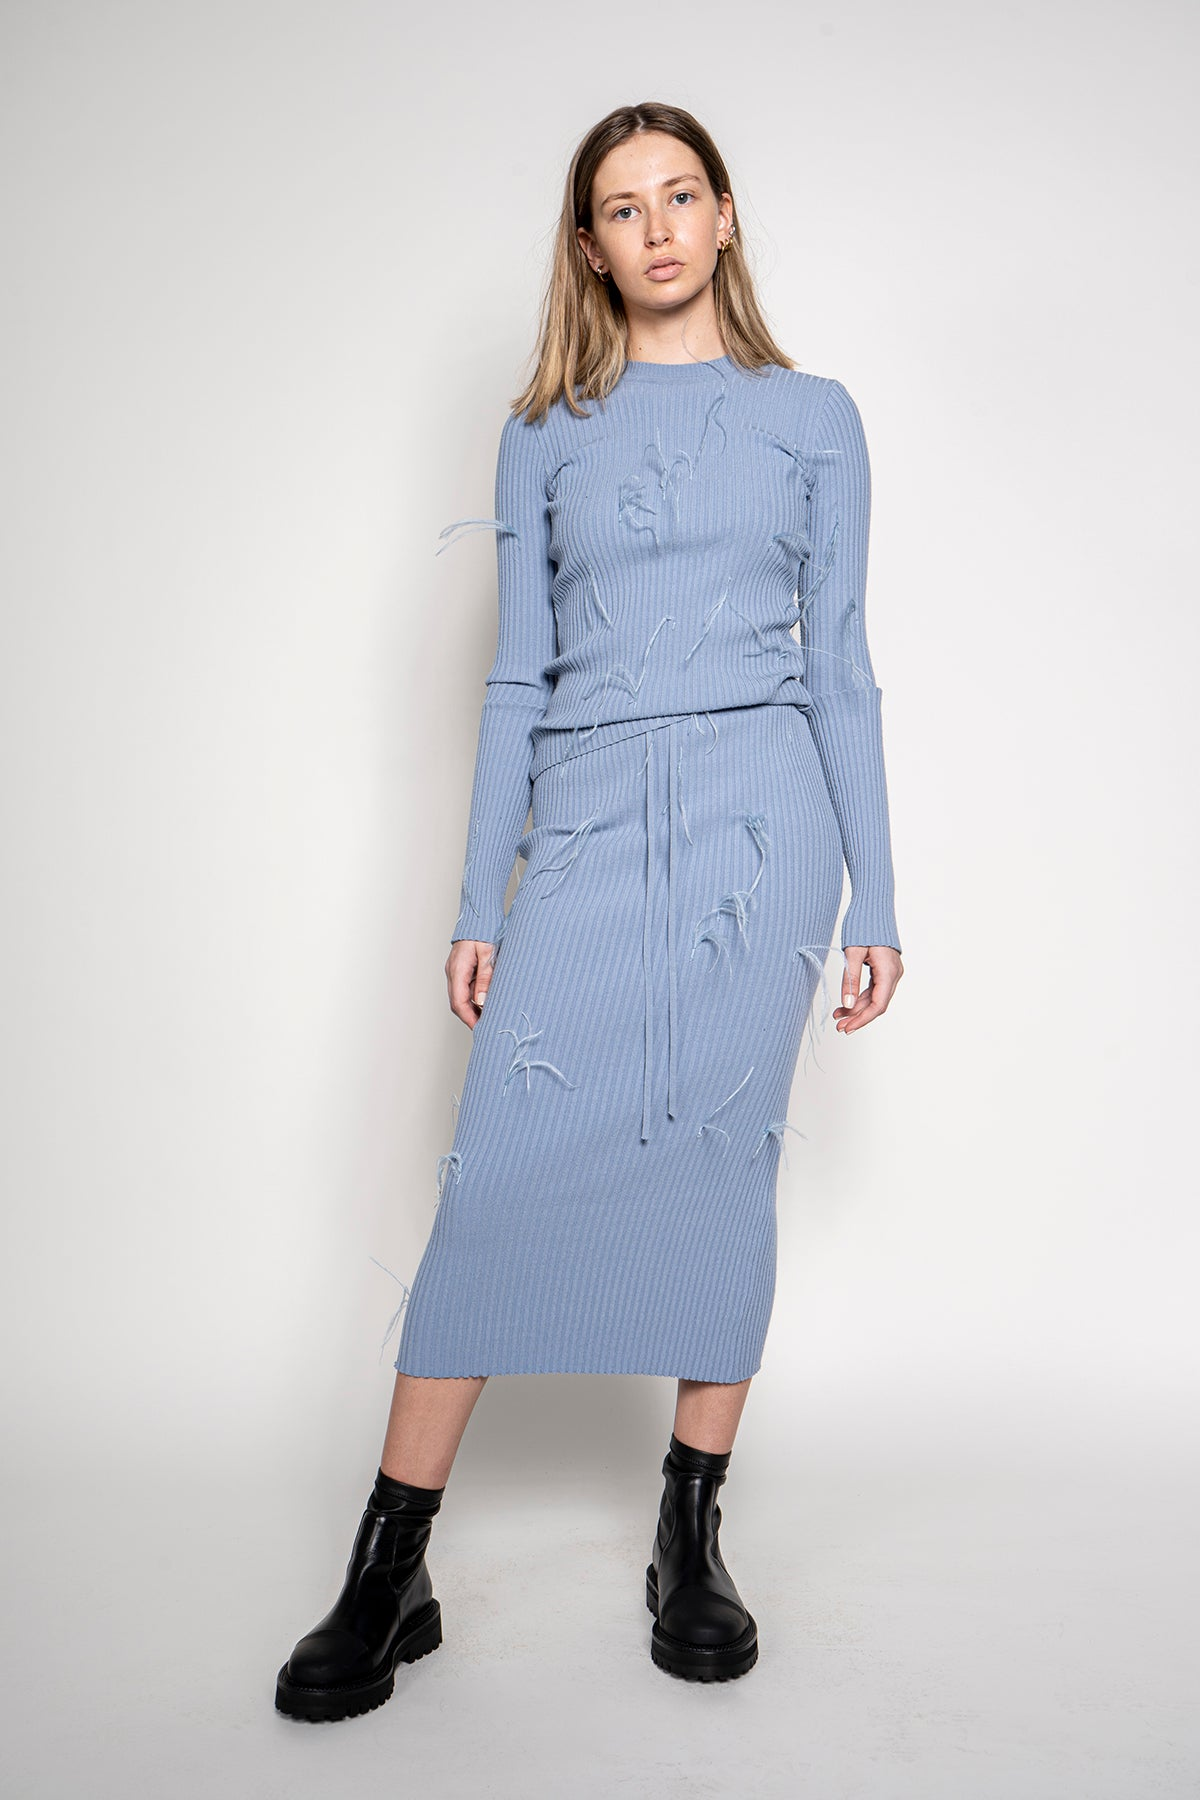 FITTED LONG SKIRT IN BABY BLUE